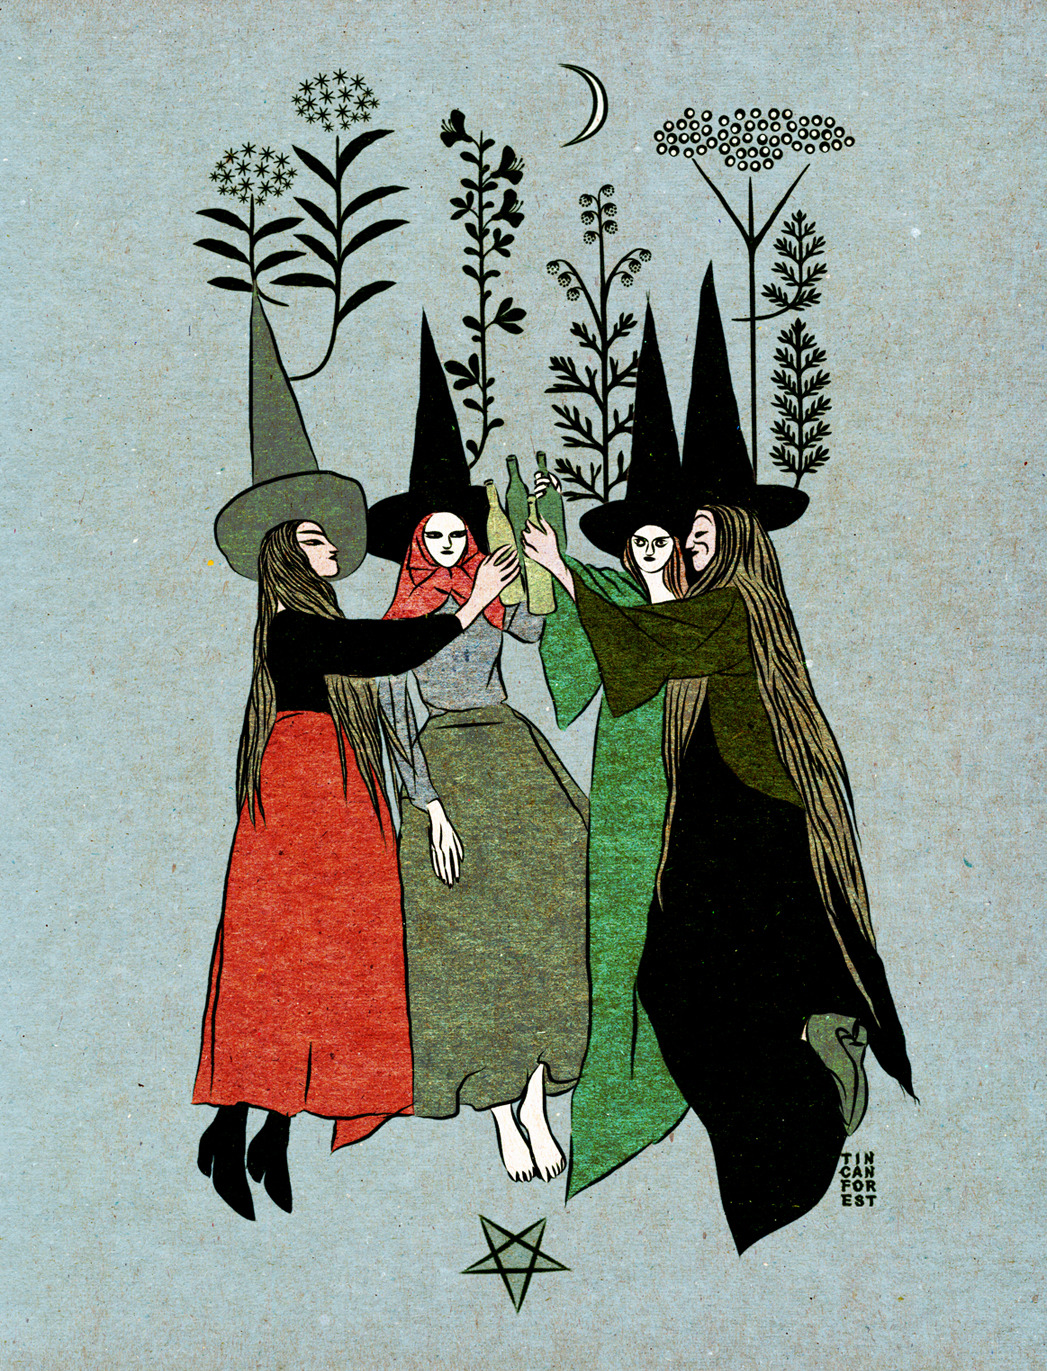 Coven Gruit